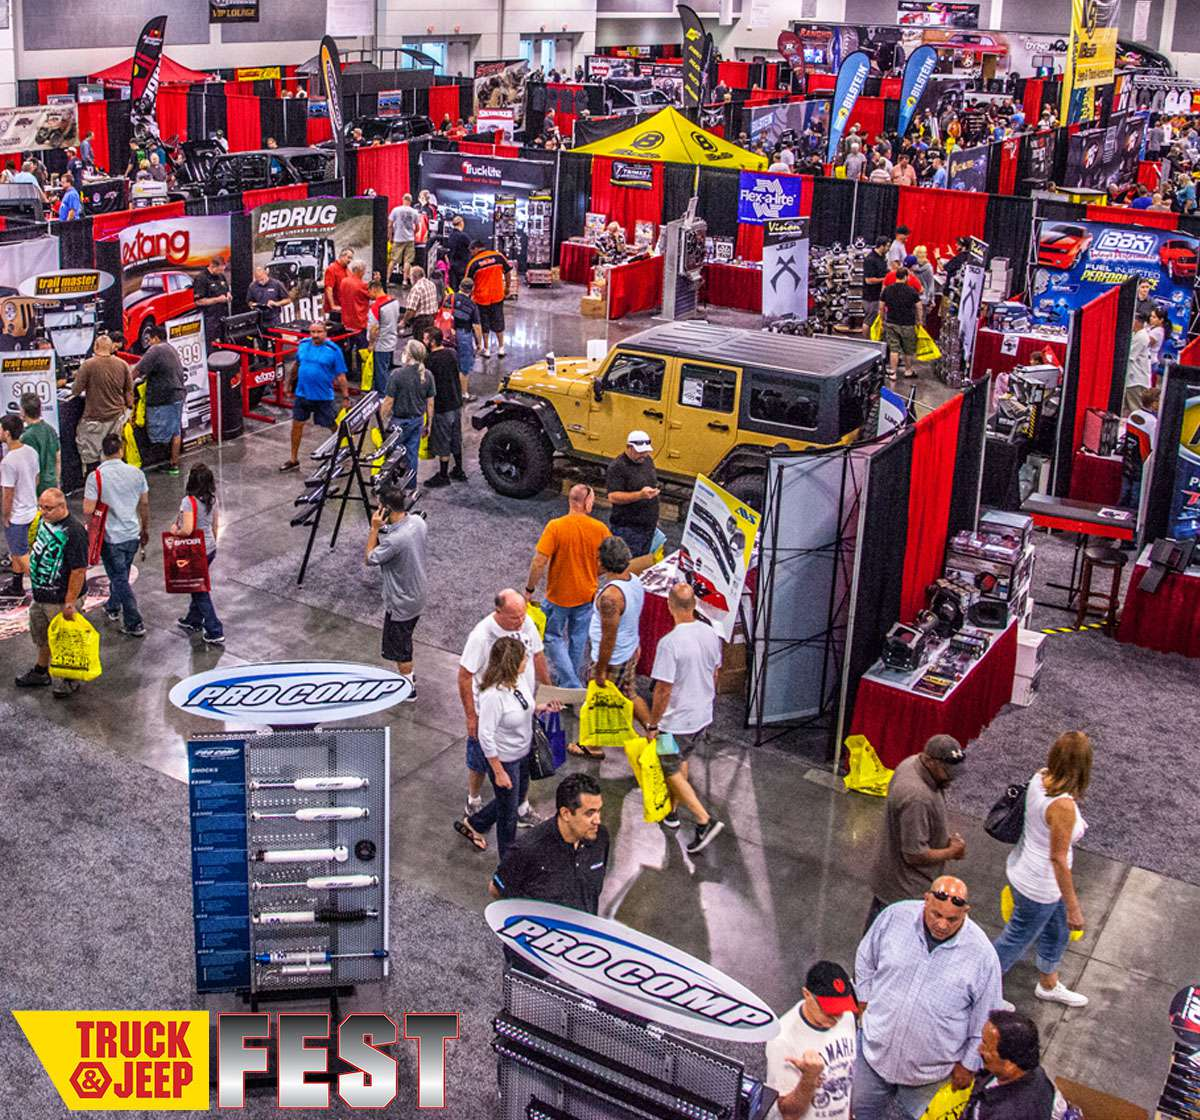 Denver Big Air Event Heiditown: 4 WHEEL PARTS LAUNCHES FIRST EVER CANADIAN TRUCK & JEEP